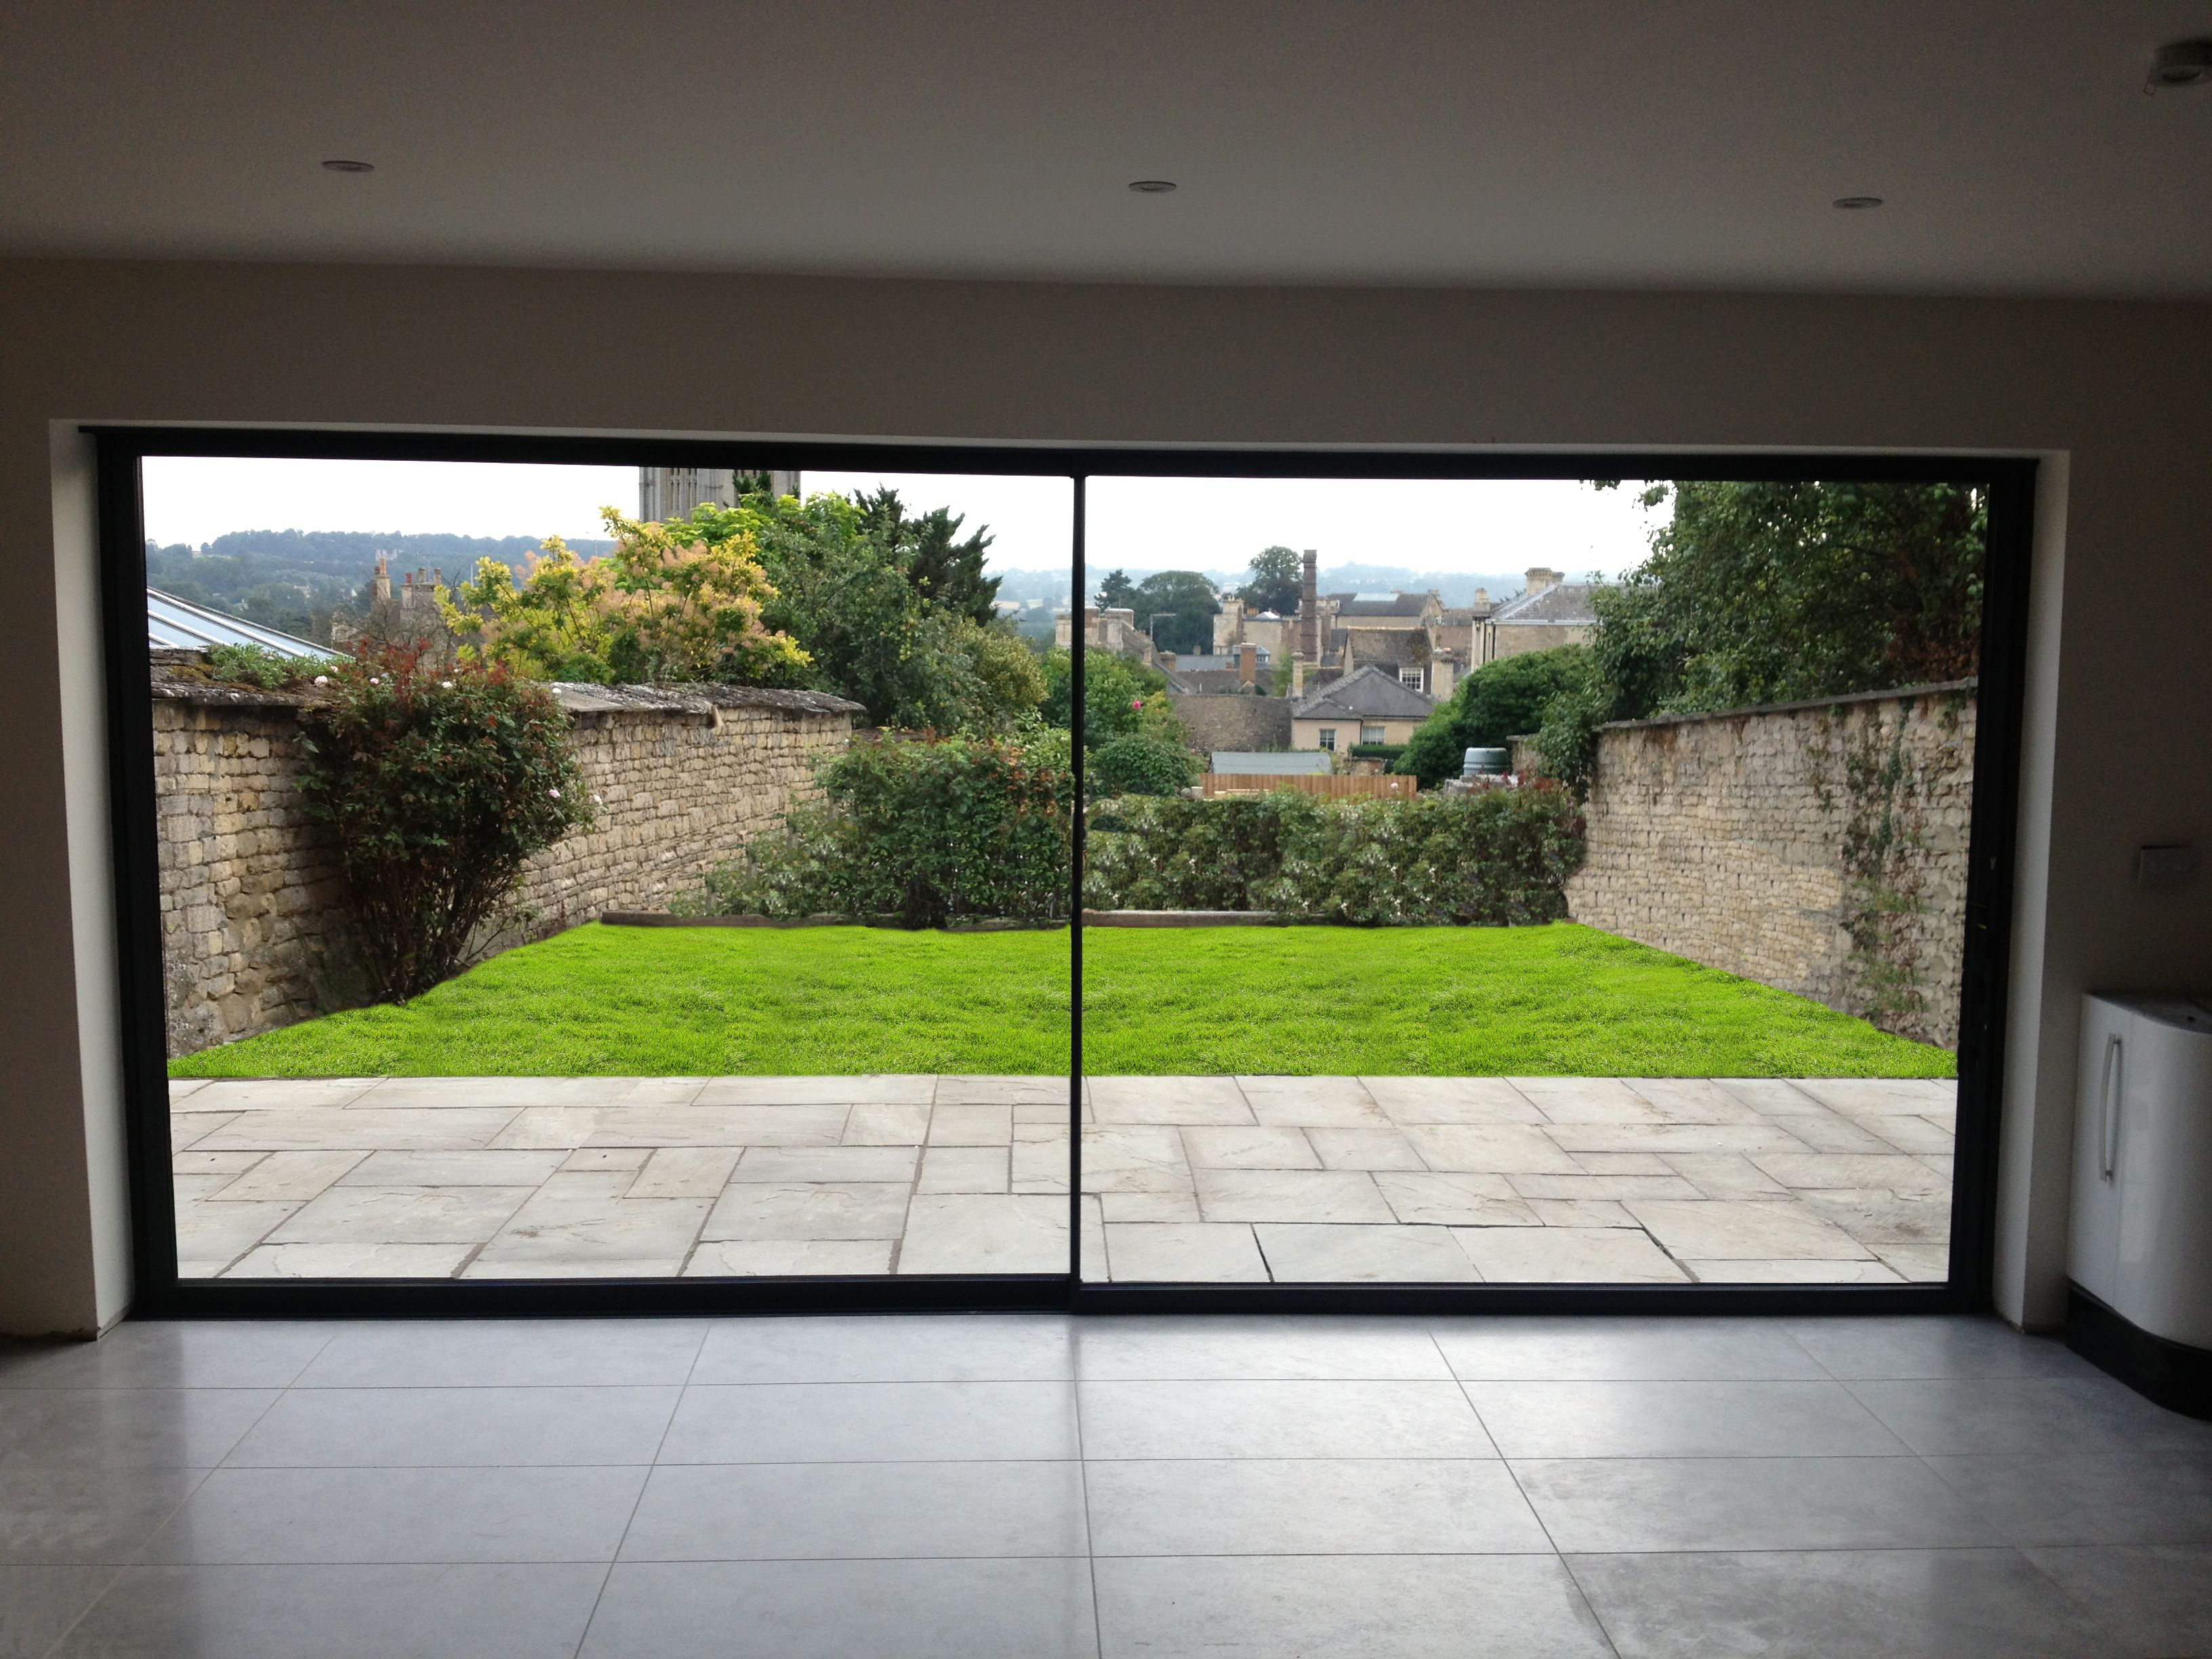 ultraline doors 21mm sightline uk made 4 to 6 week lead time